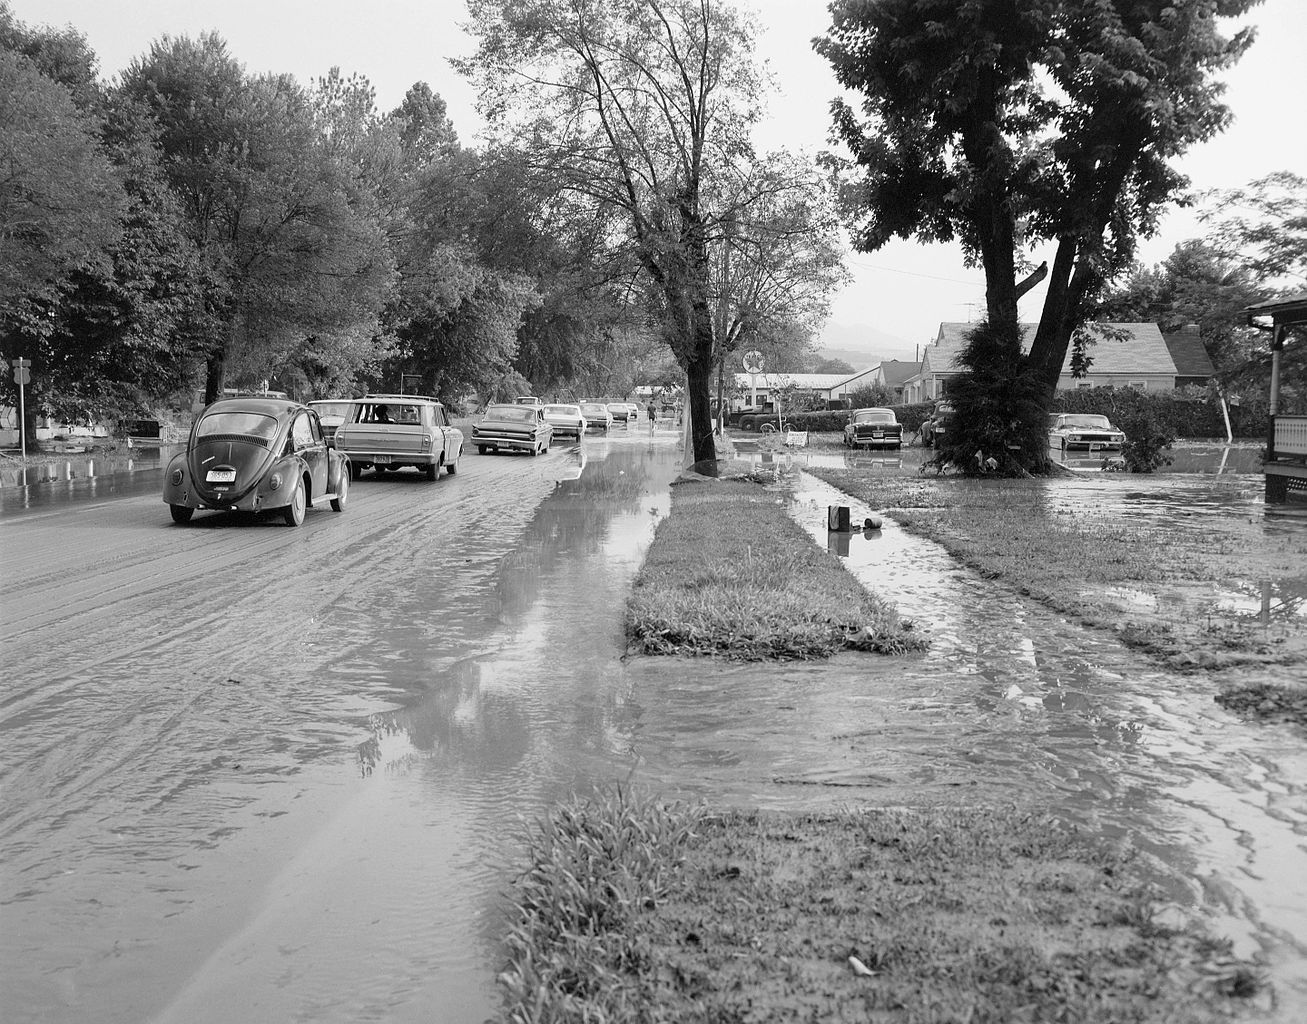 Flooding In Buena Vista Caused By The Passage Of Hurricane Camille Through The Area Aerial View Virginia Virginia History